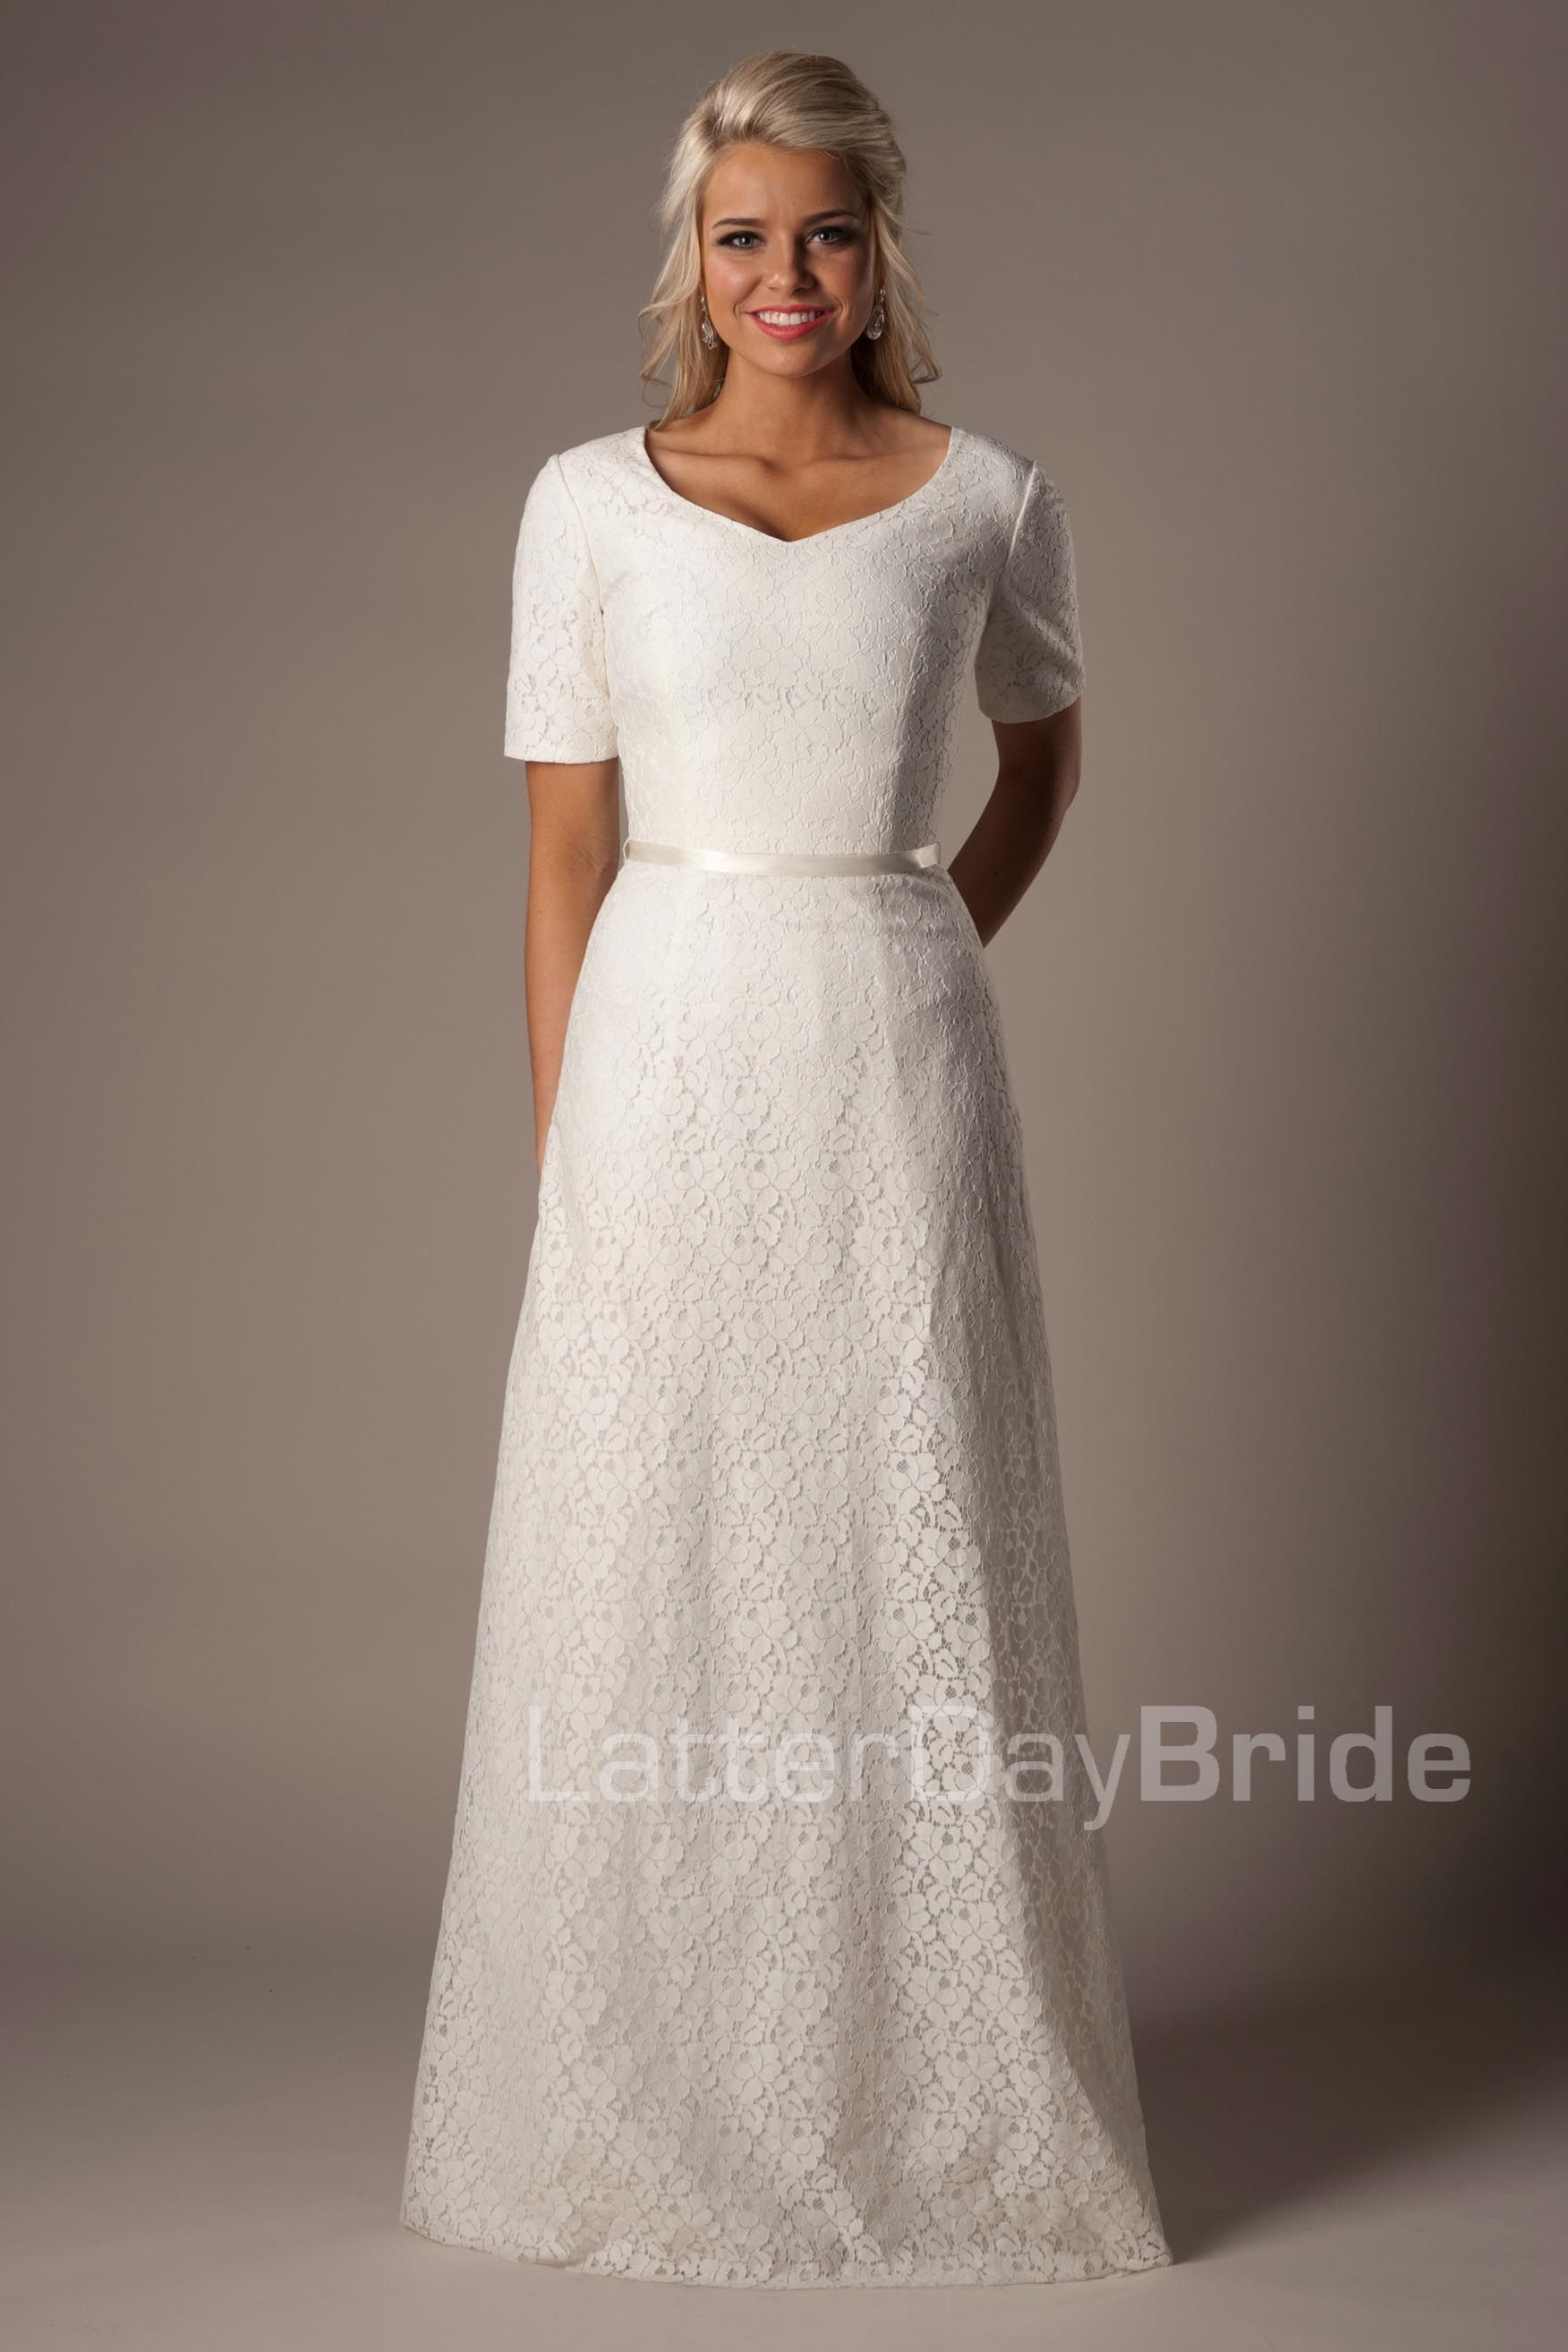 modest wedding dresses latter day bride on pinterest